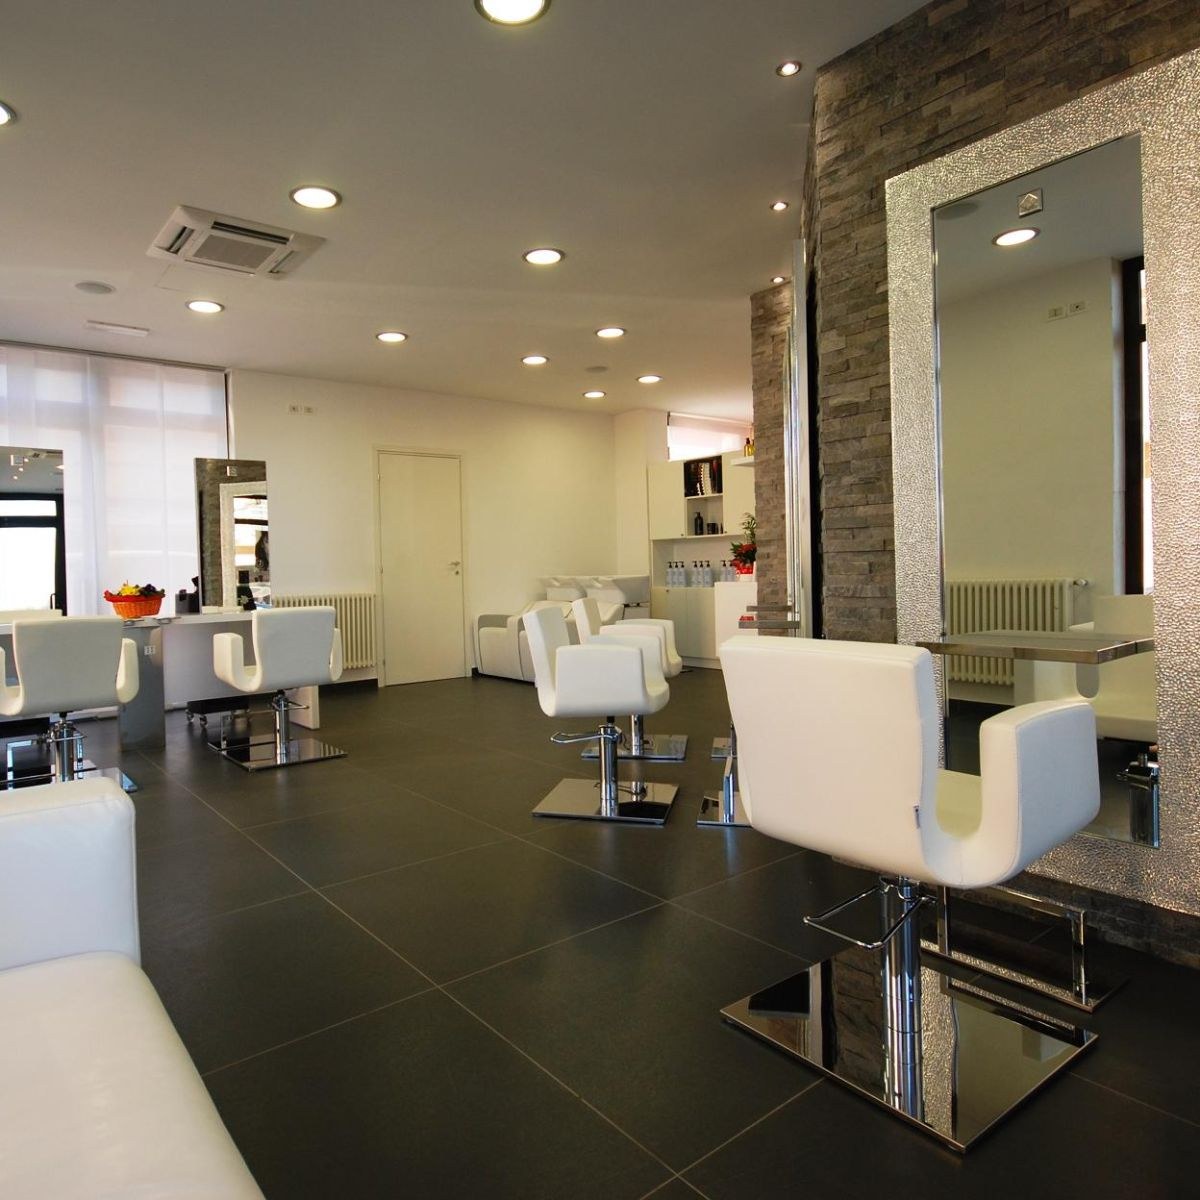 Nelson mobilier hair salon furniture made in france - Salon de chat francais ...